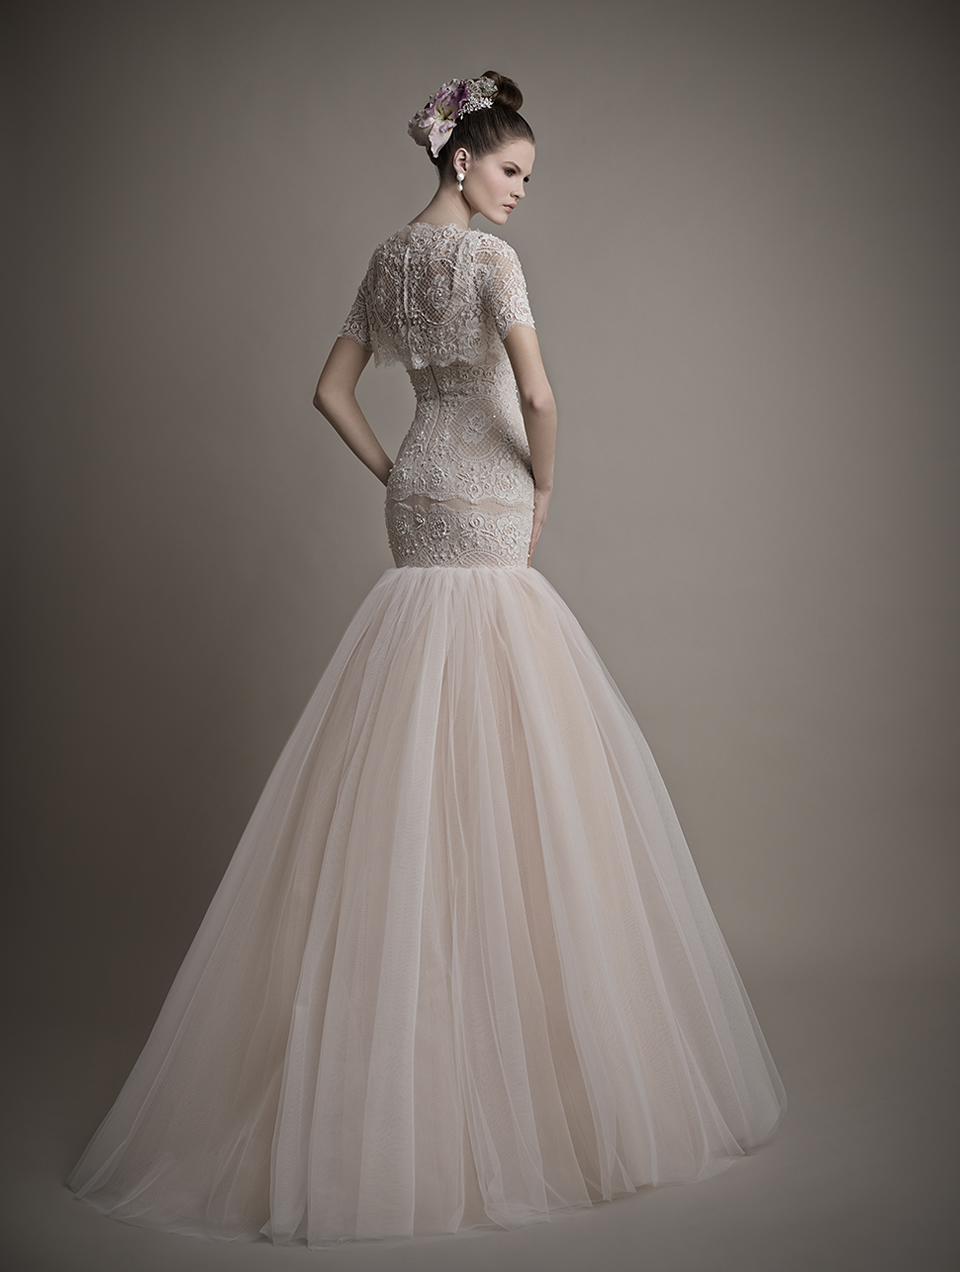 Ersa Atelier's 2015 Bridal Collection - Elizabeth Wedding Dress